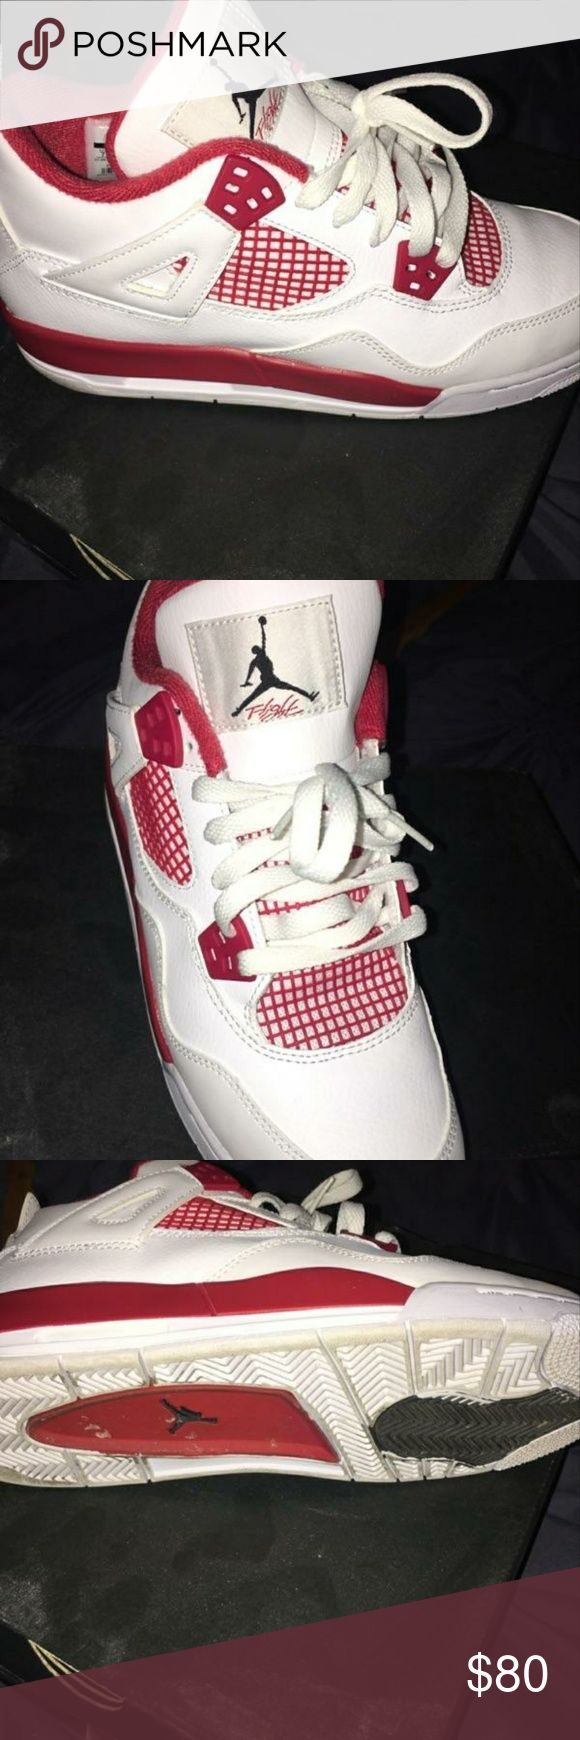 Jordans Almost new pair of red and white Jordan 4 tennis shoes. These shoes have been worn 1 time and come in original box Jordan Shoes Athletic Shoes